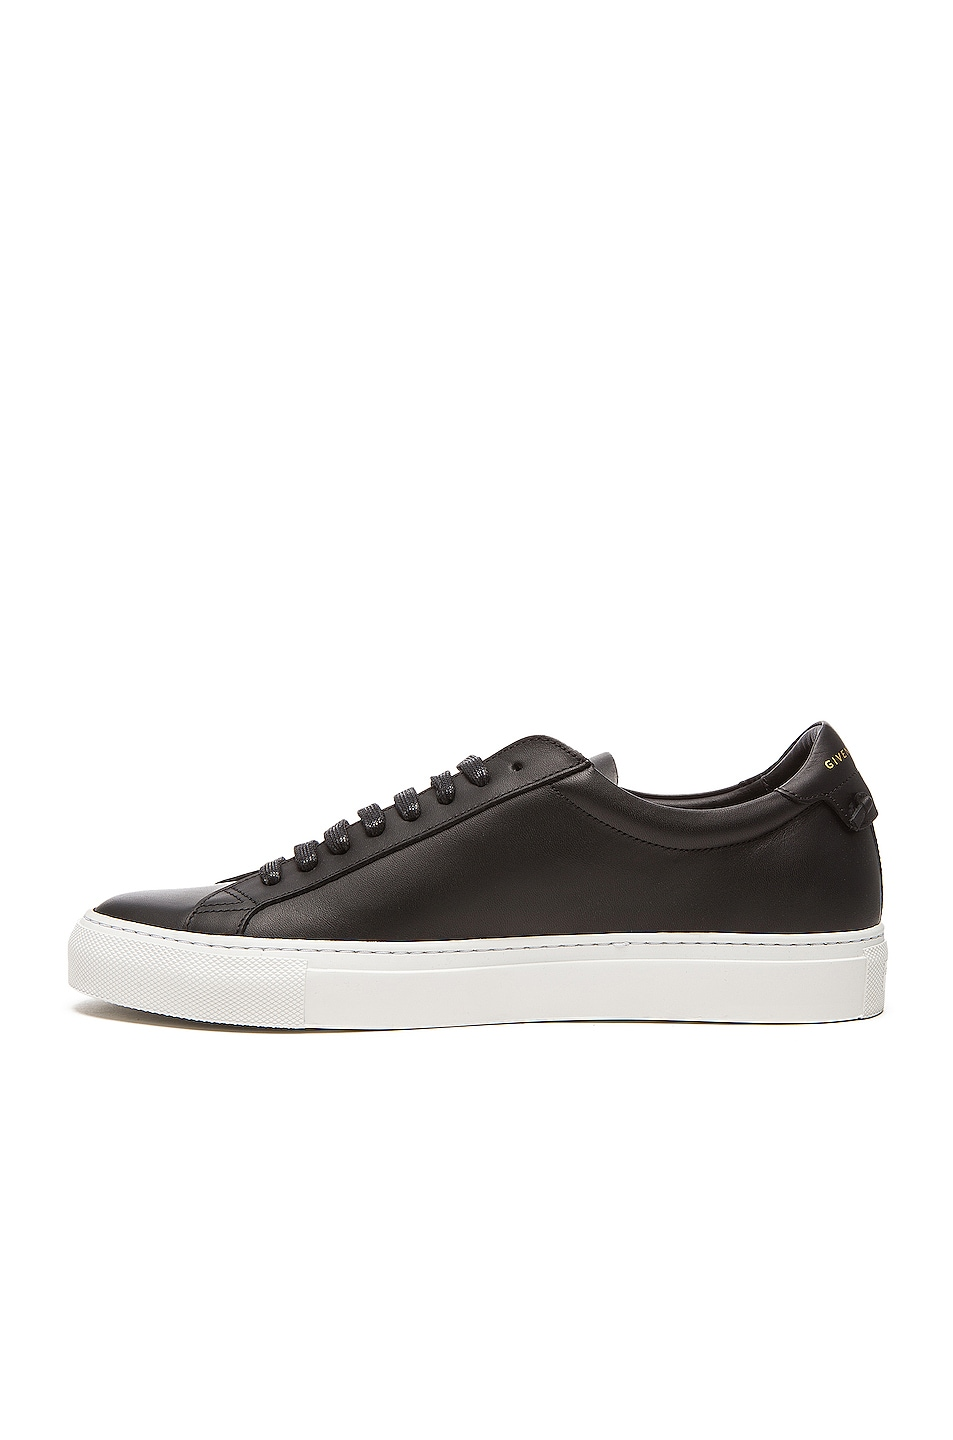 Image 5 of Givenchy Knots Low Top Leather Sneakers in Black